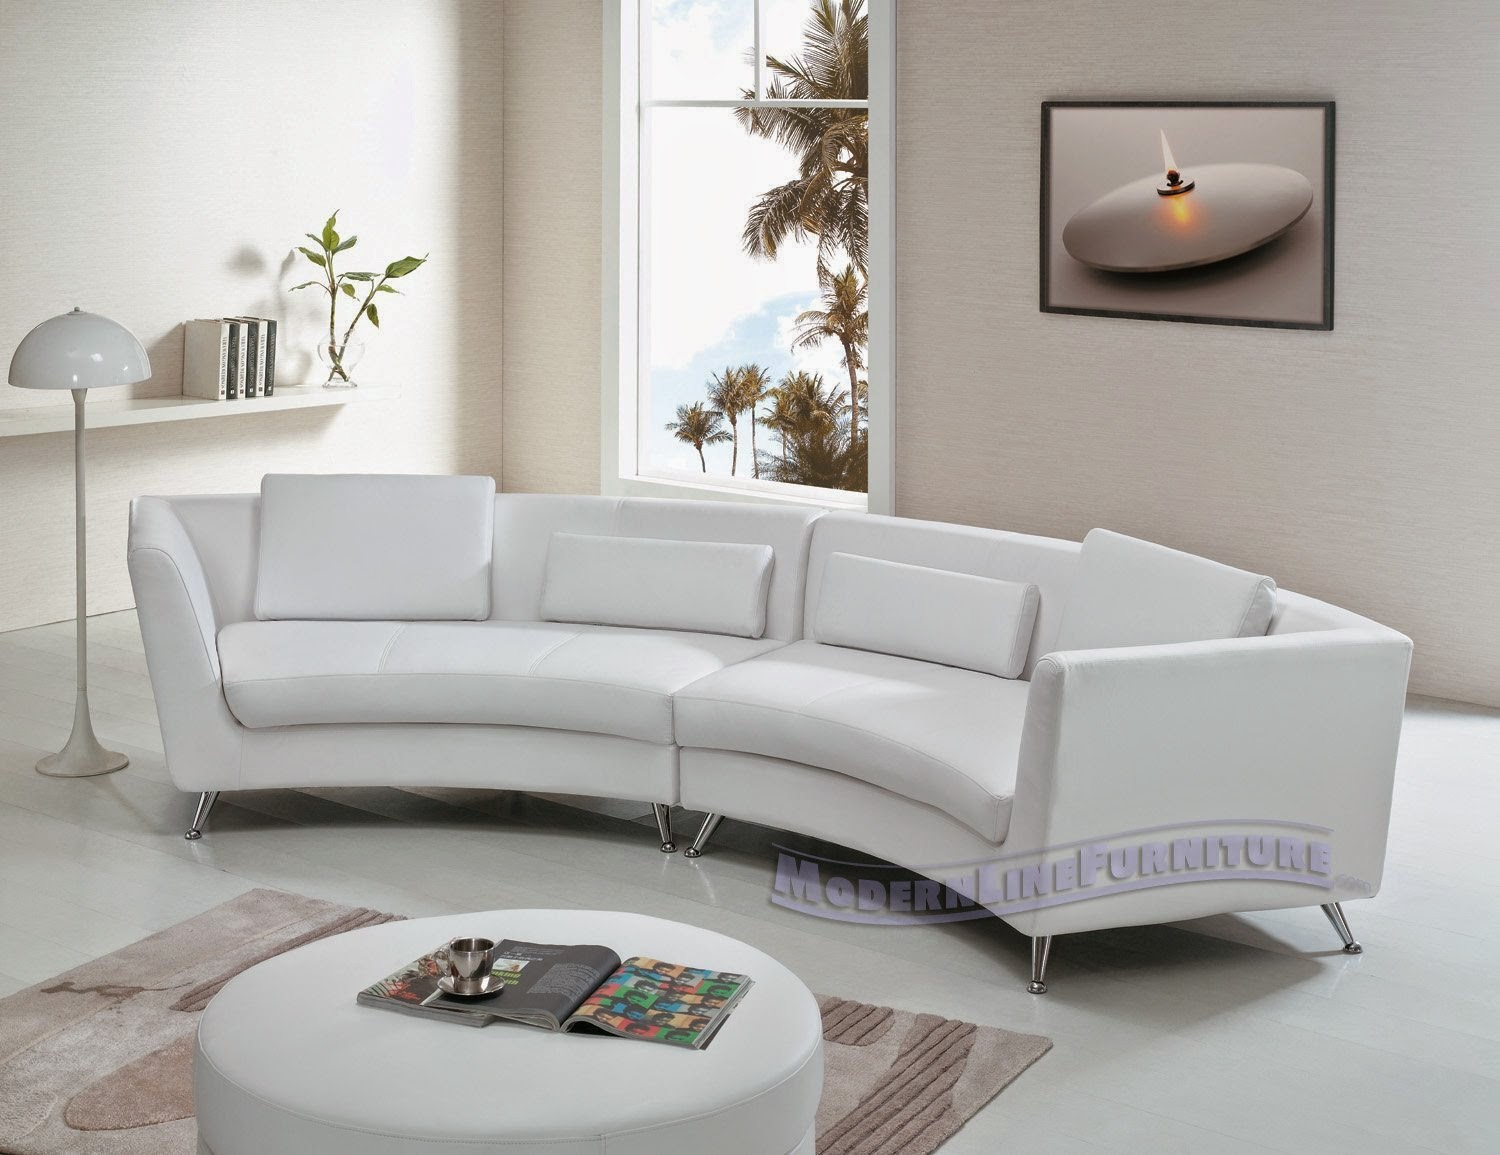 Bay Sofa Leather Sectional Ashley Curved For Window Contemporary Furniture White Long